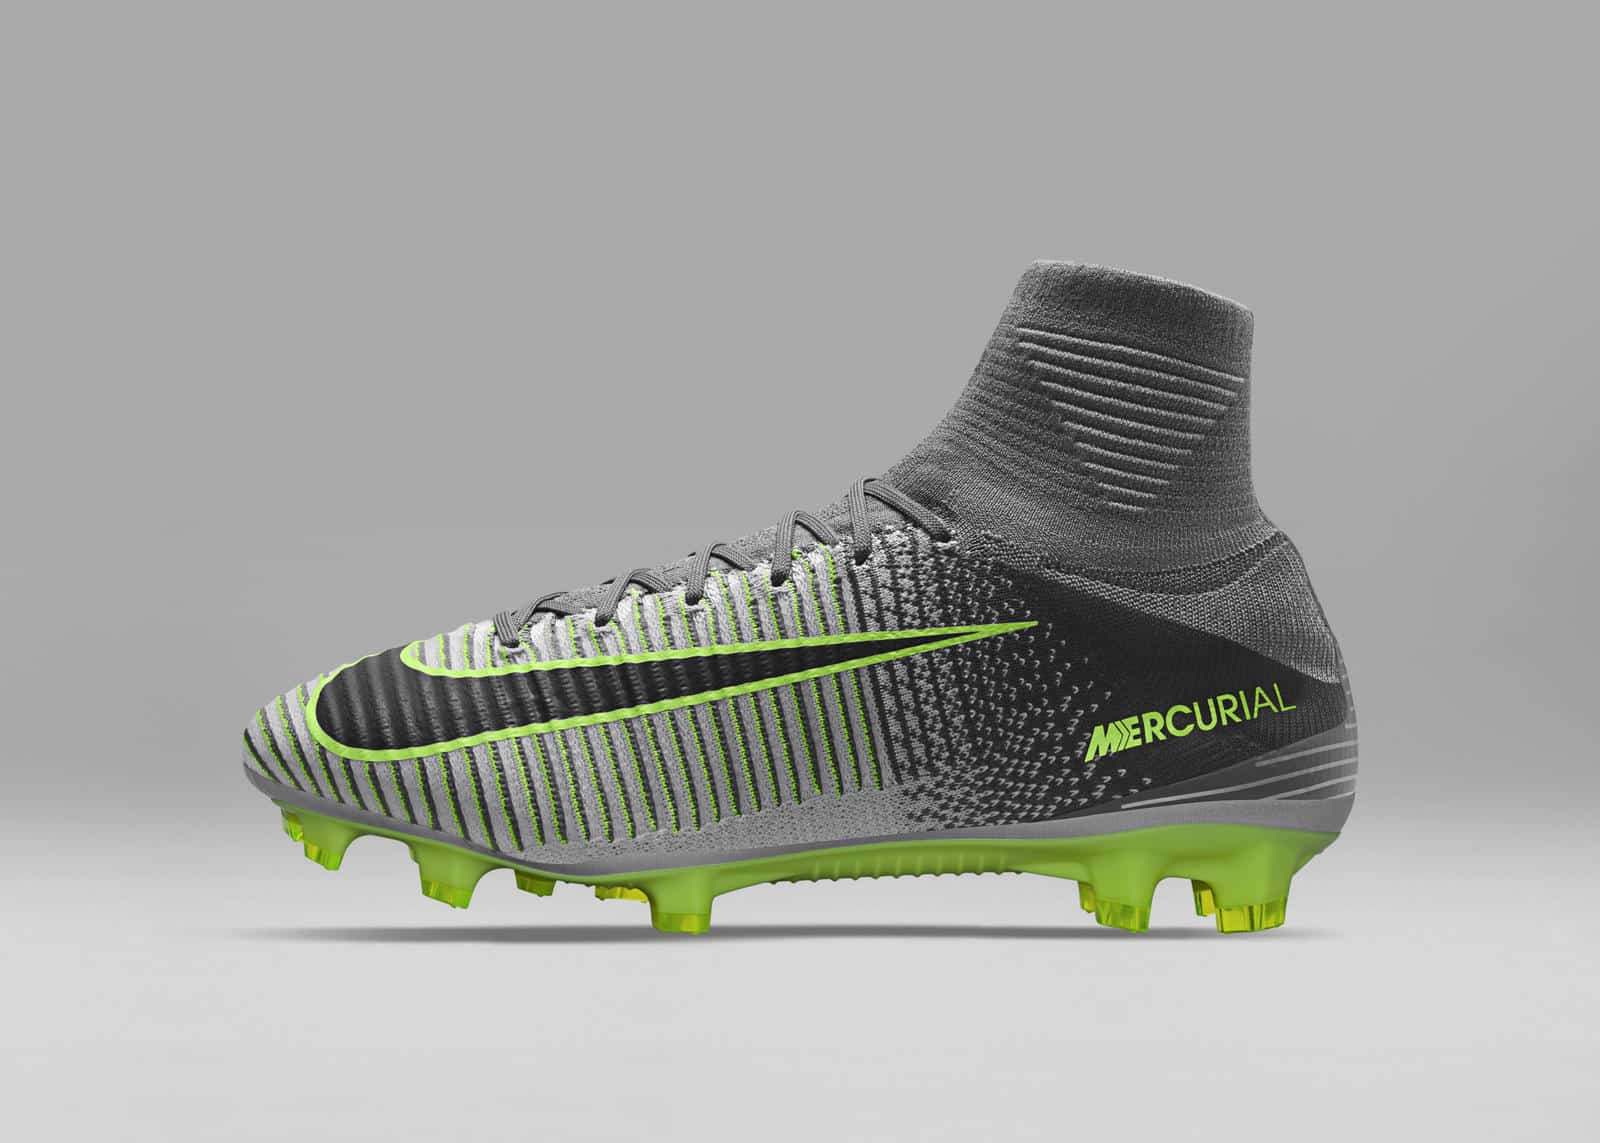 2016 Football Foot Chaussure Mercurial De homme Nike Chaussures wxIxq10ZnT